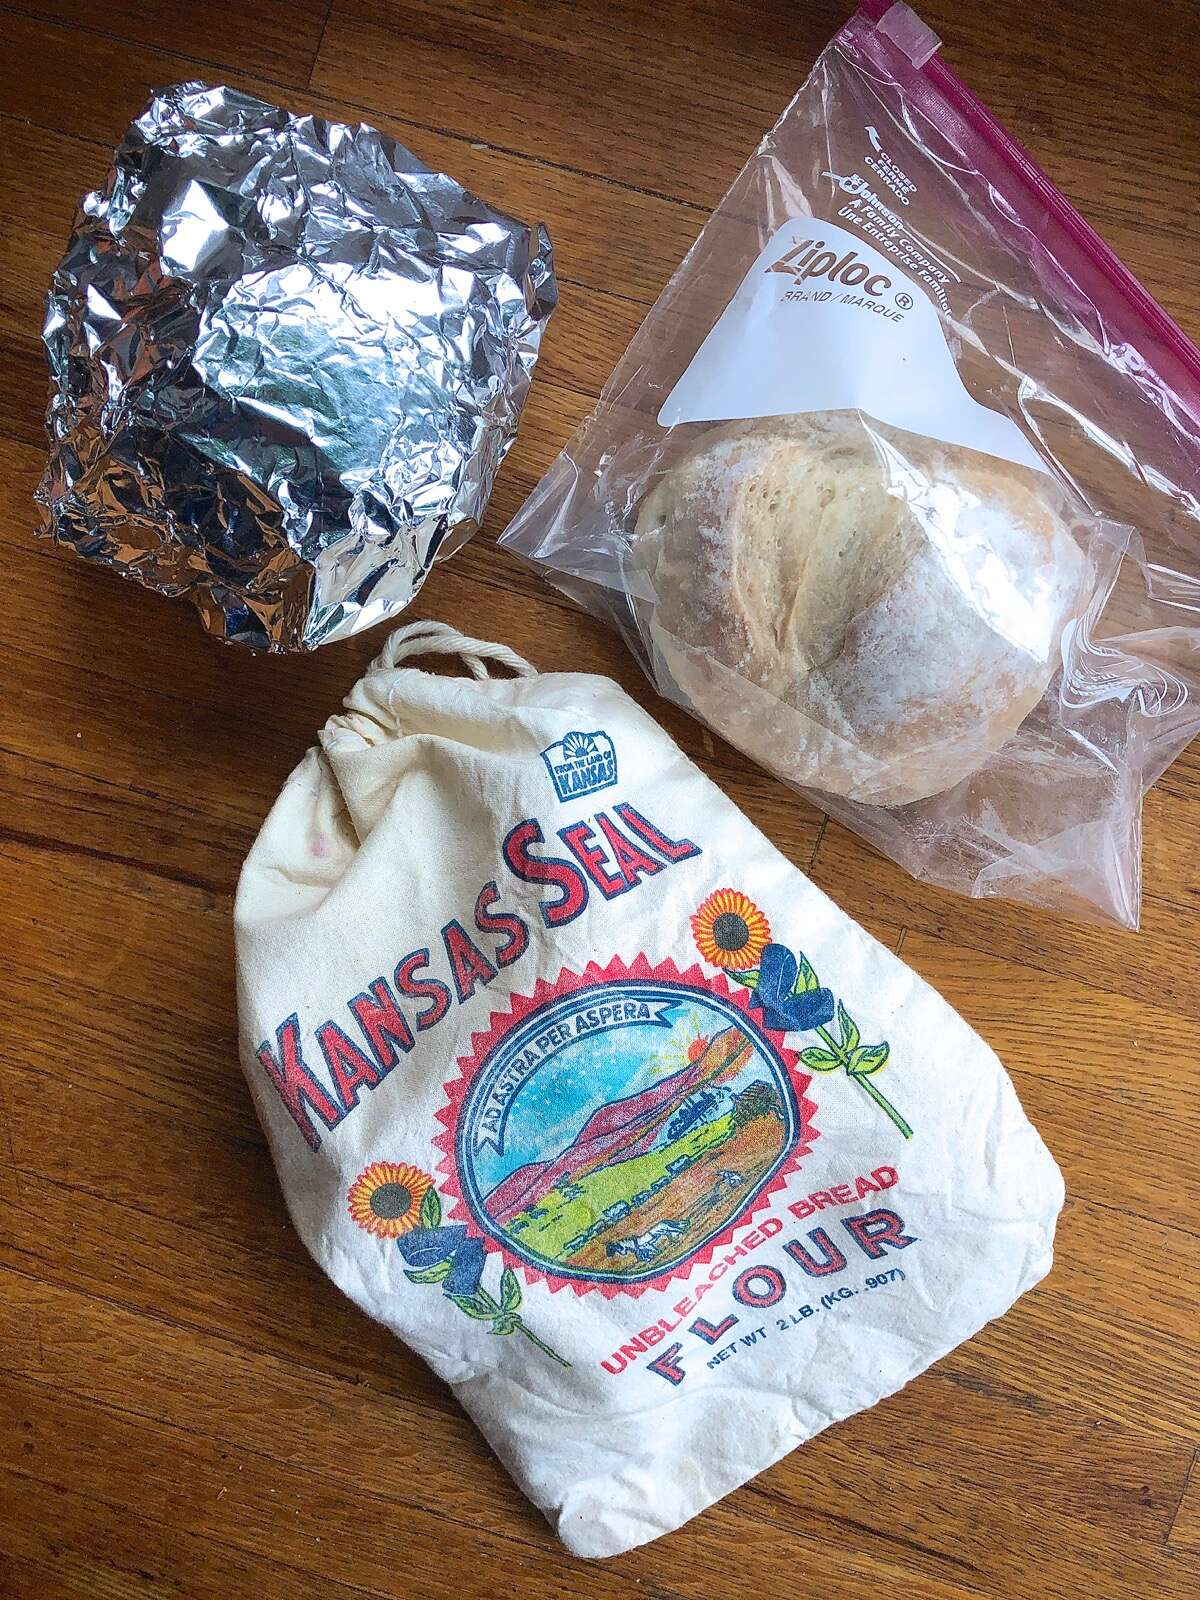 Small round loaves stored in zip-top bag, cloth bag, and foil.